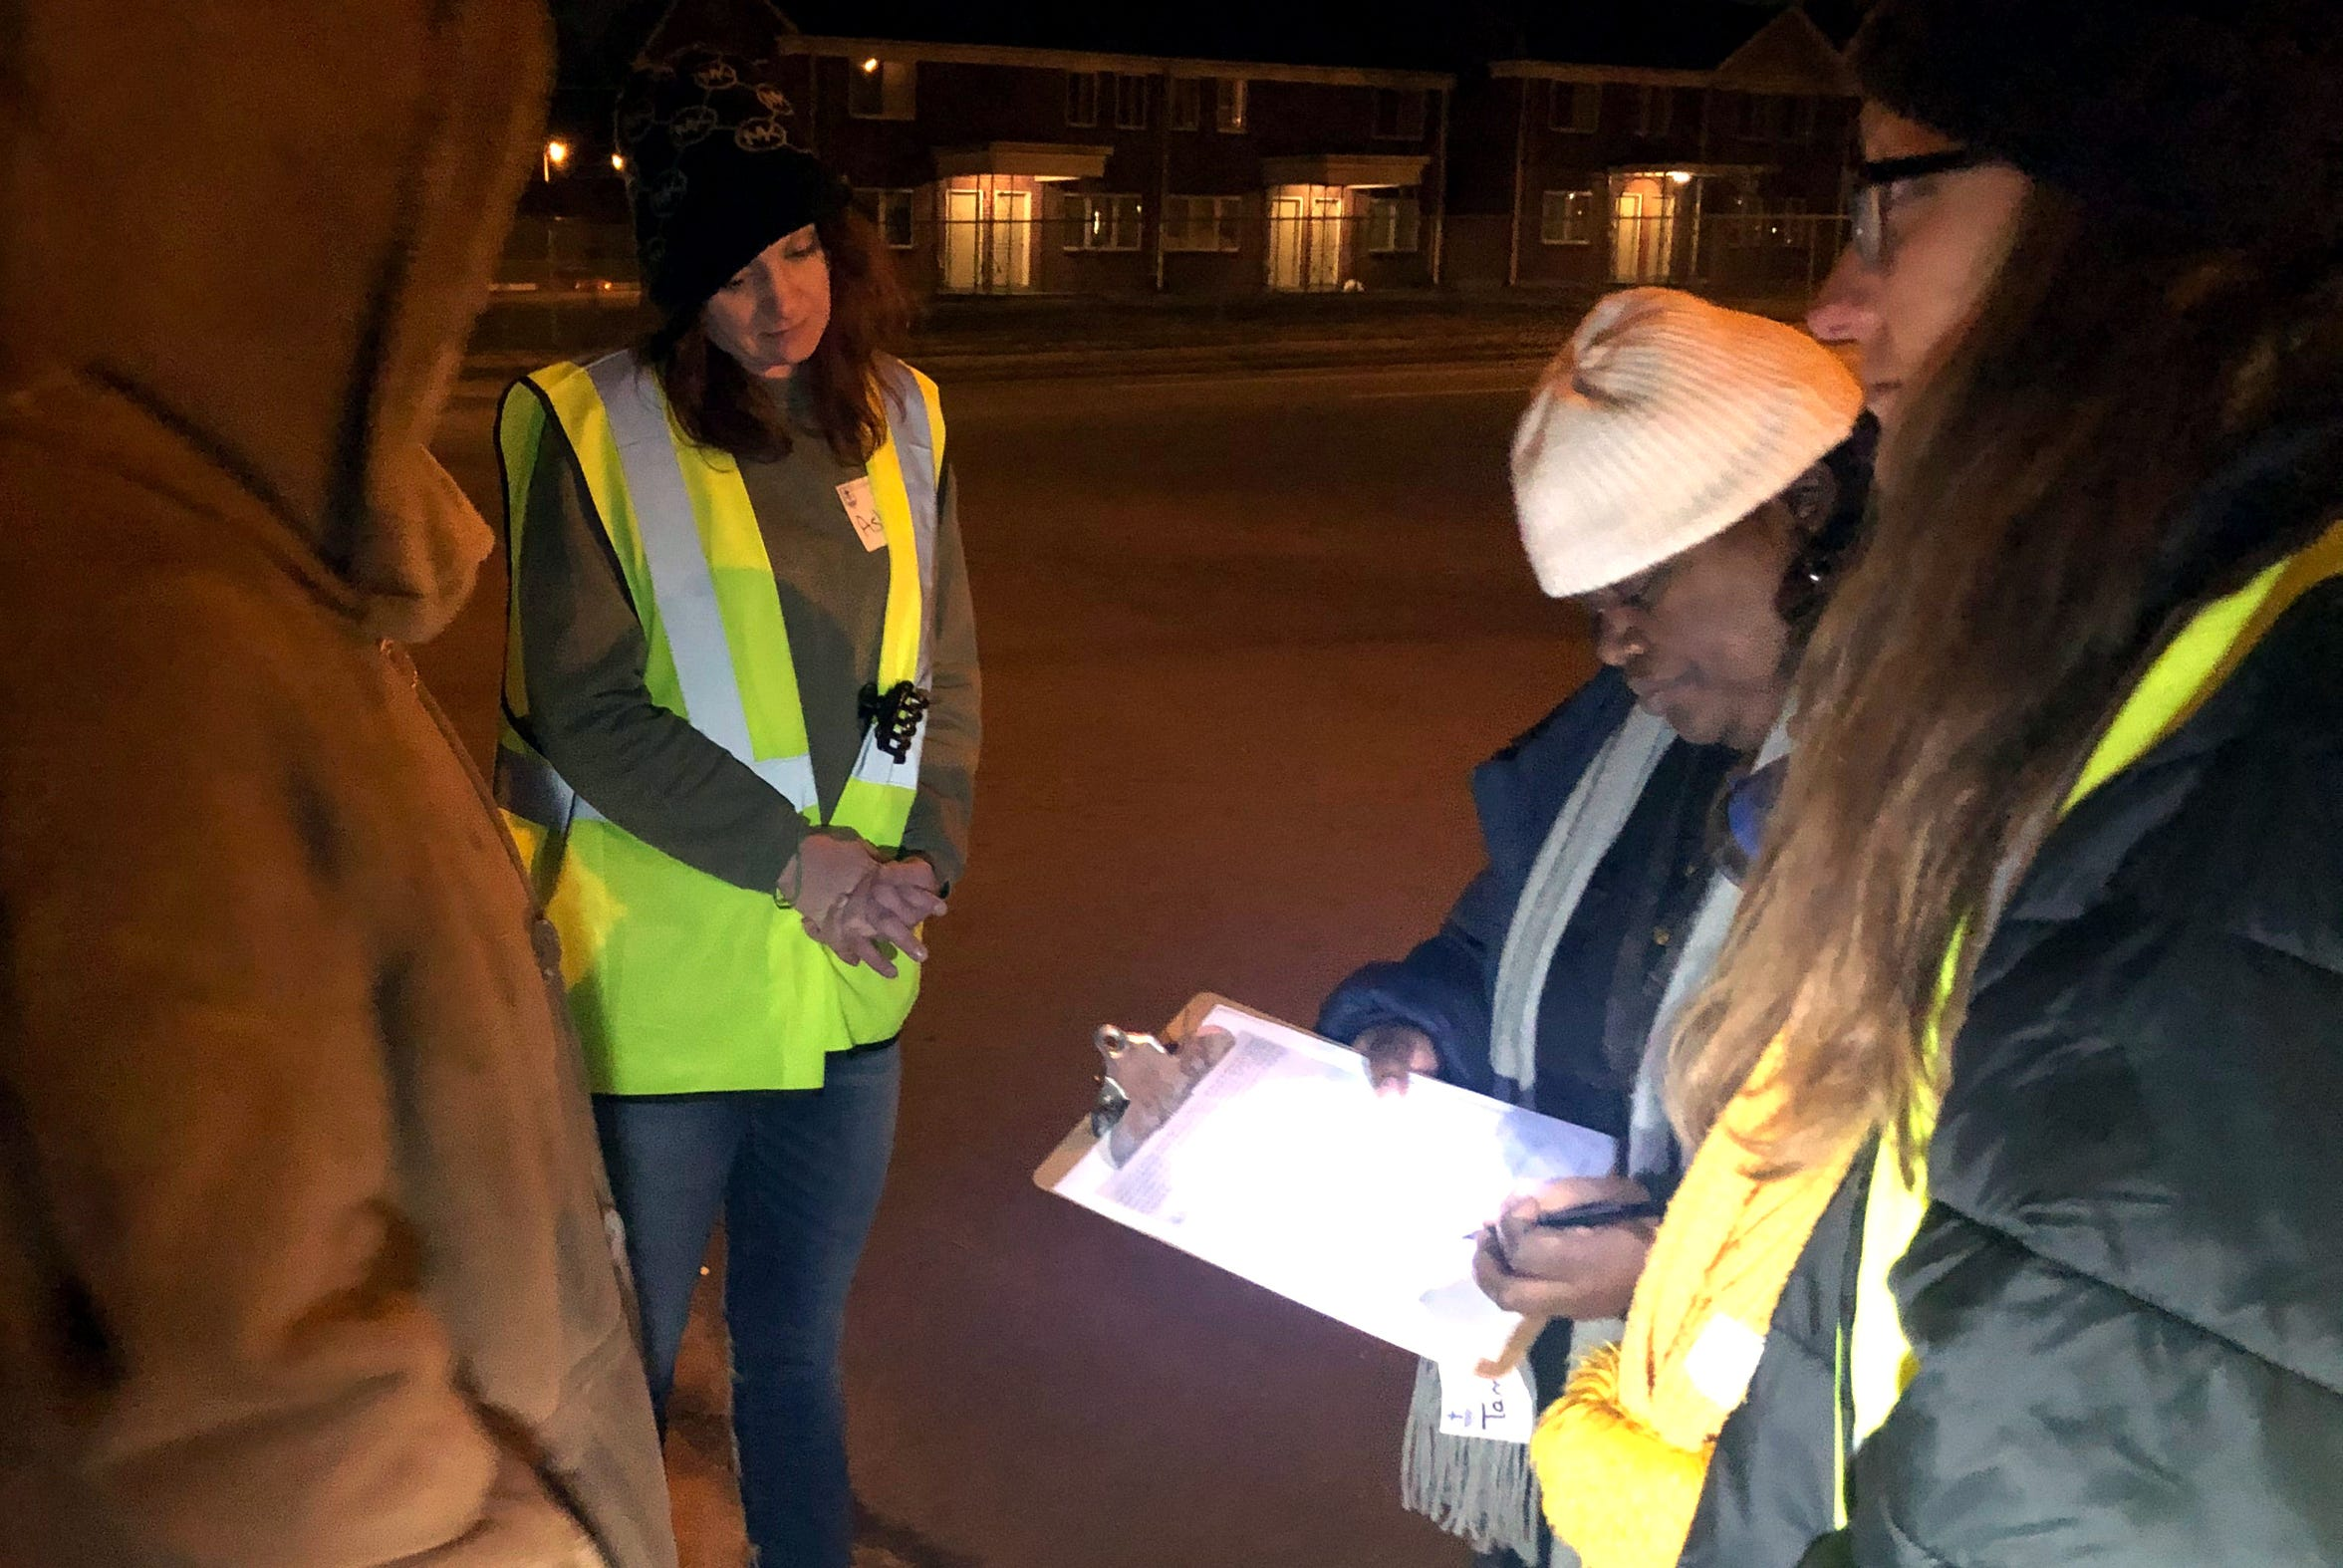 Point-In-Time count volunteers collect a survey in Frayser just before 6 a.m. on January 22, 2020.